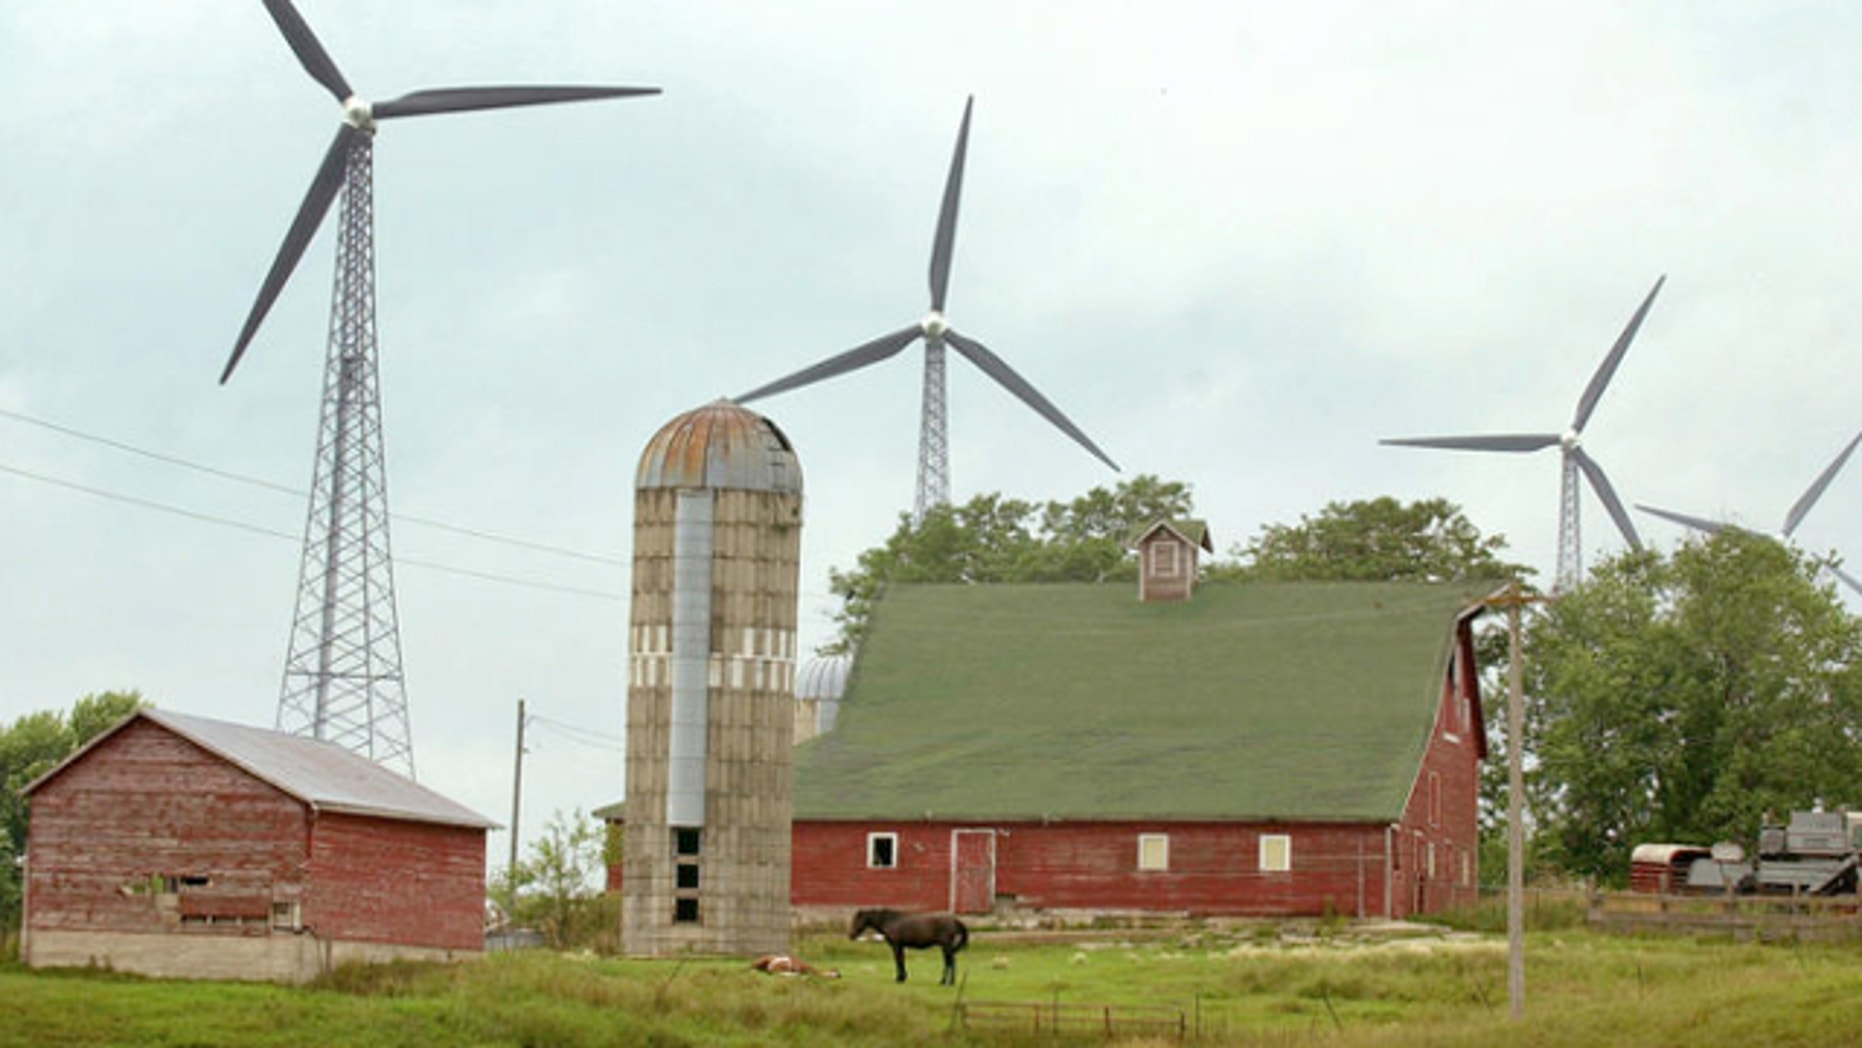 FILE: July 24, 2001: Wind turbines are shown on farmland in Alta, Iowa. An Iowa woman was charged March 3, 2014, in the 1983 killings of her estranged husband and his girlfriend at a horse ranch in Newton.